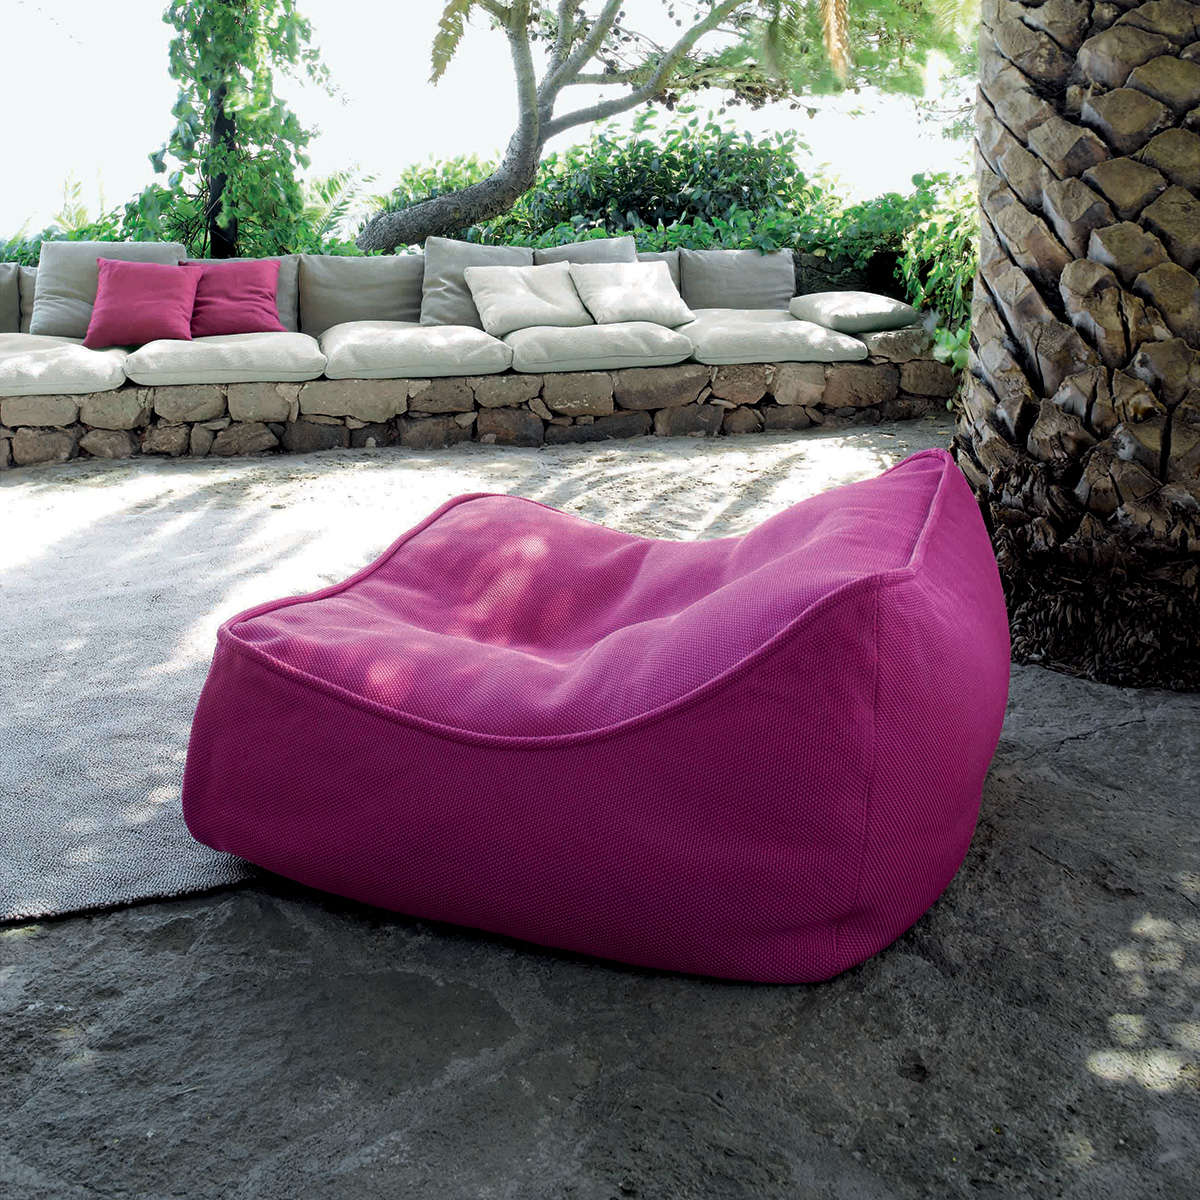 Float Paola Lenti Lounge Chair 1